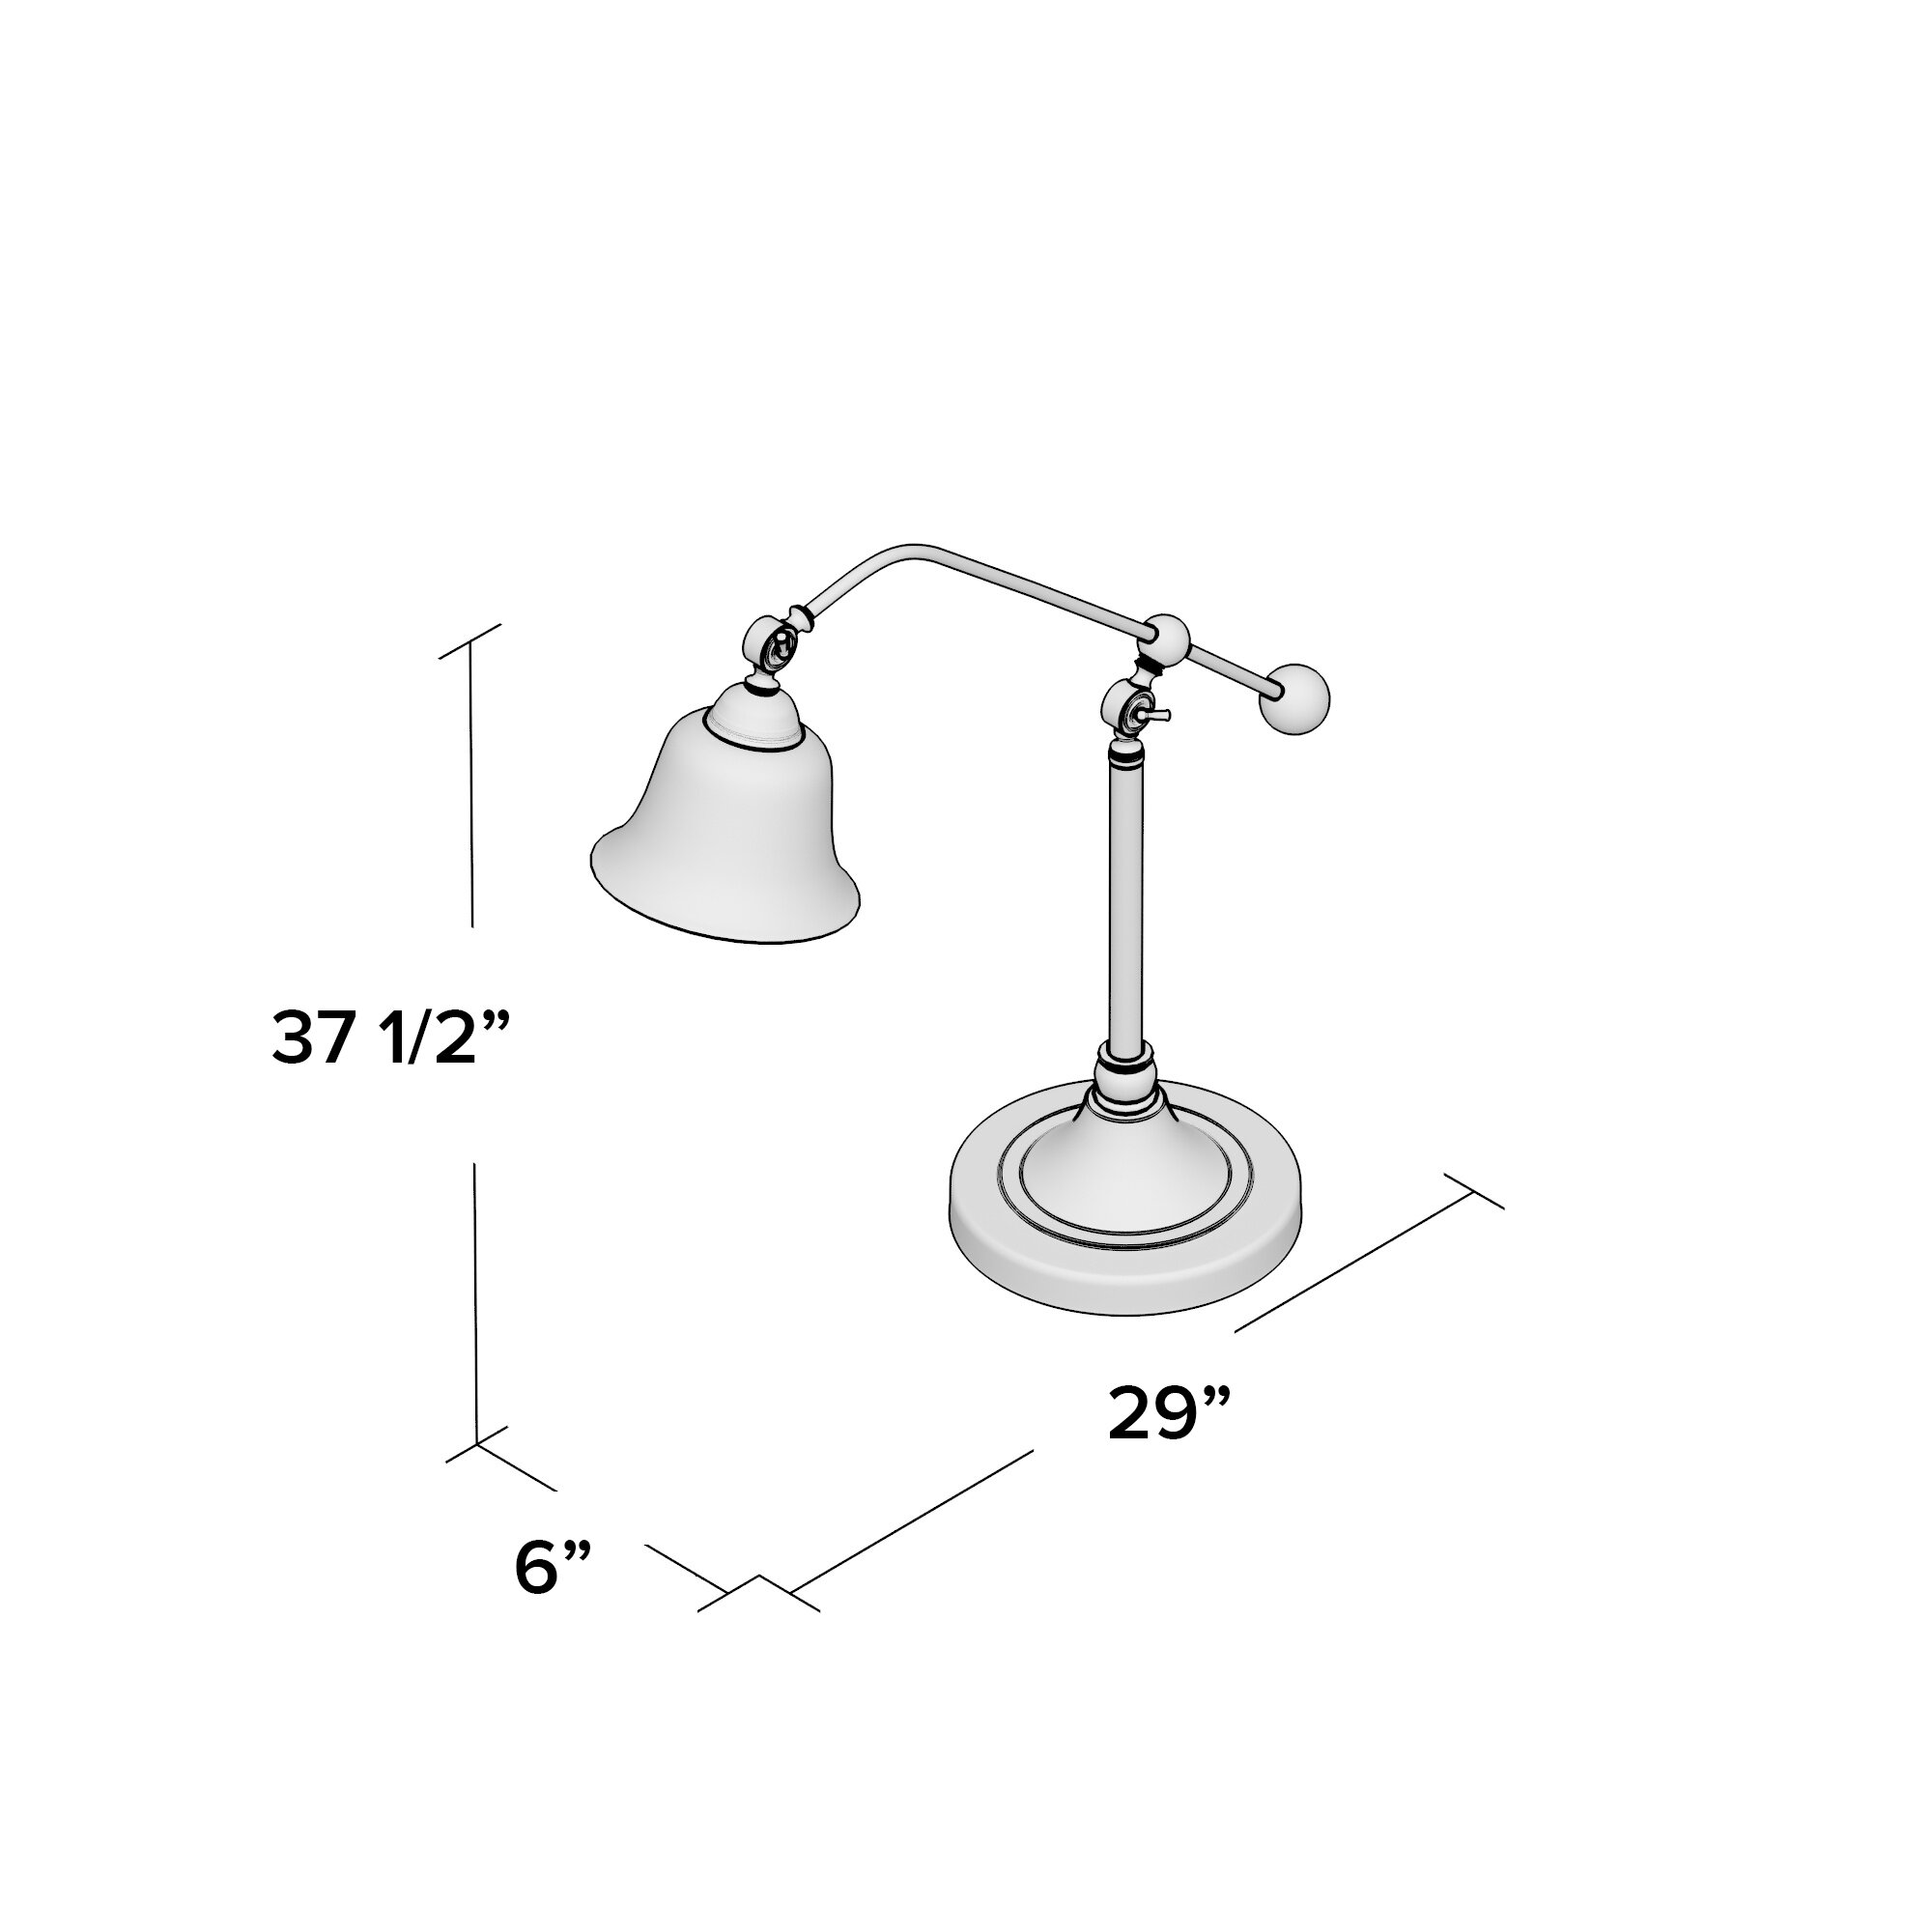 Table lamp wiring diagrams efcaviation